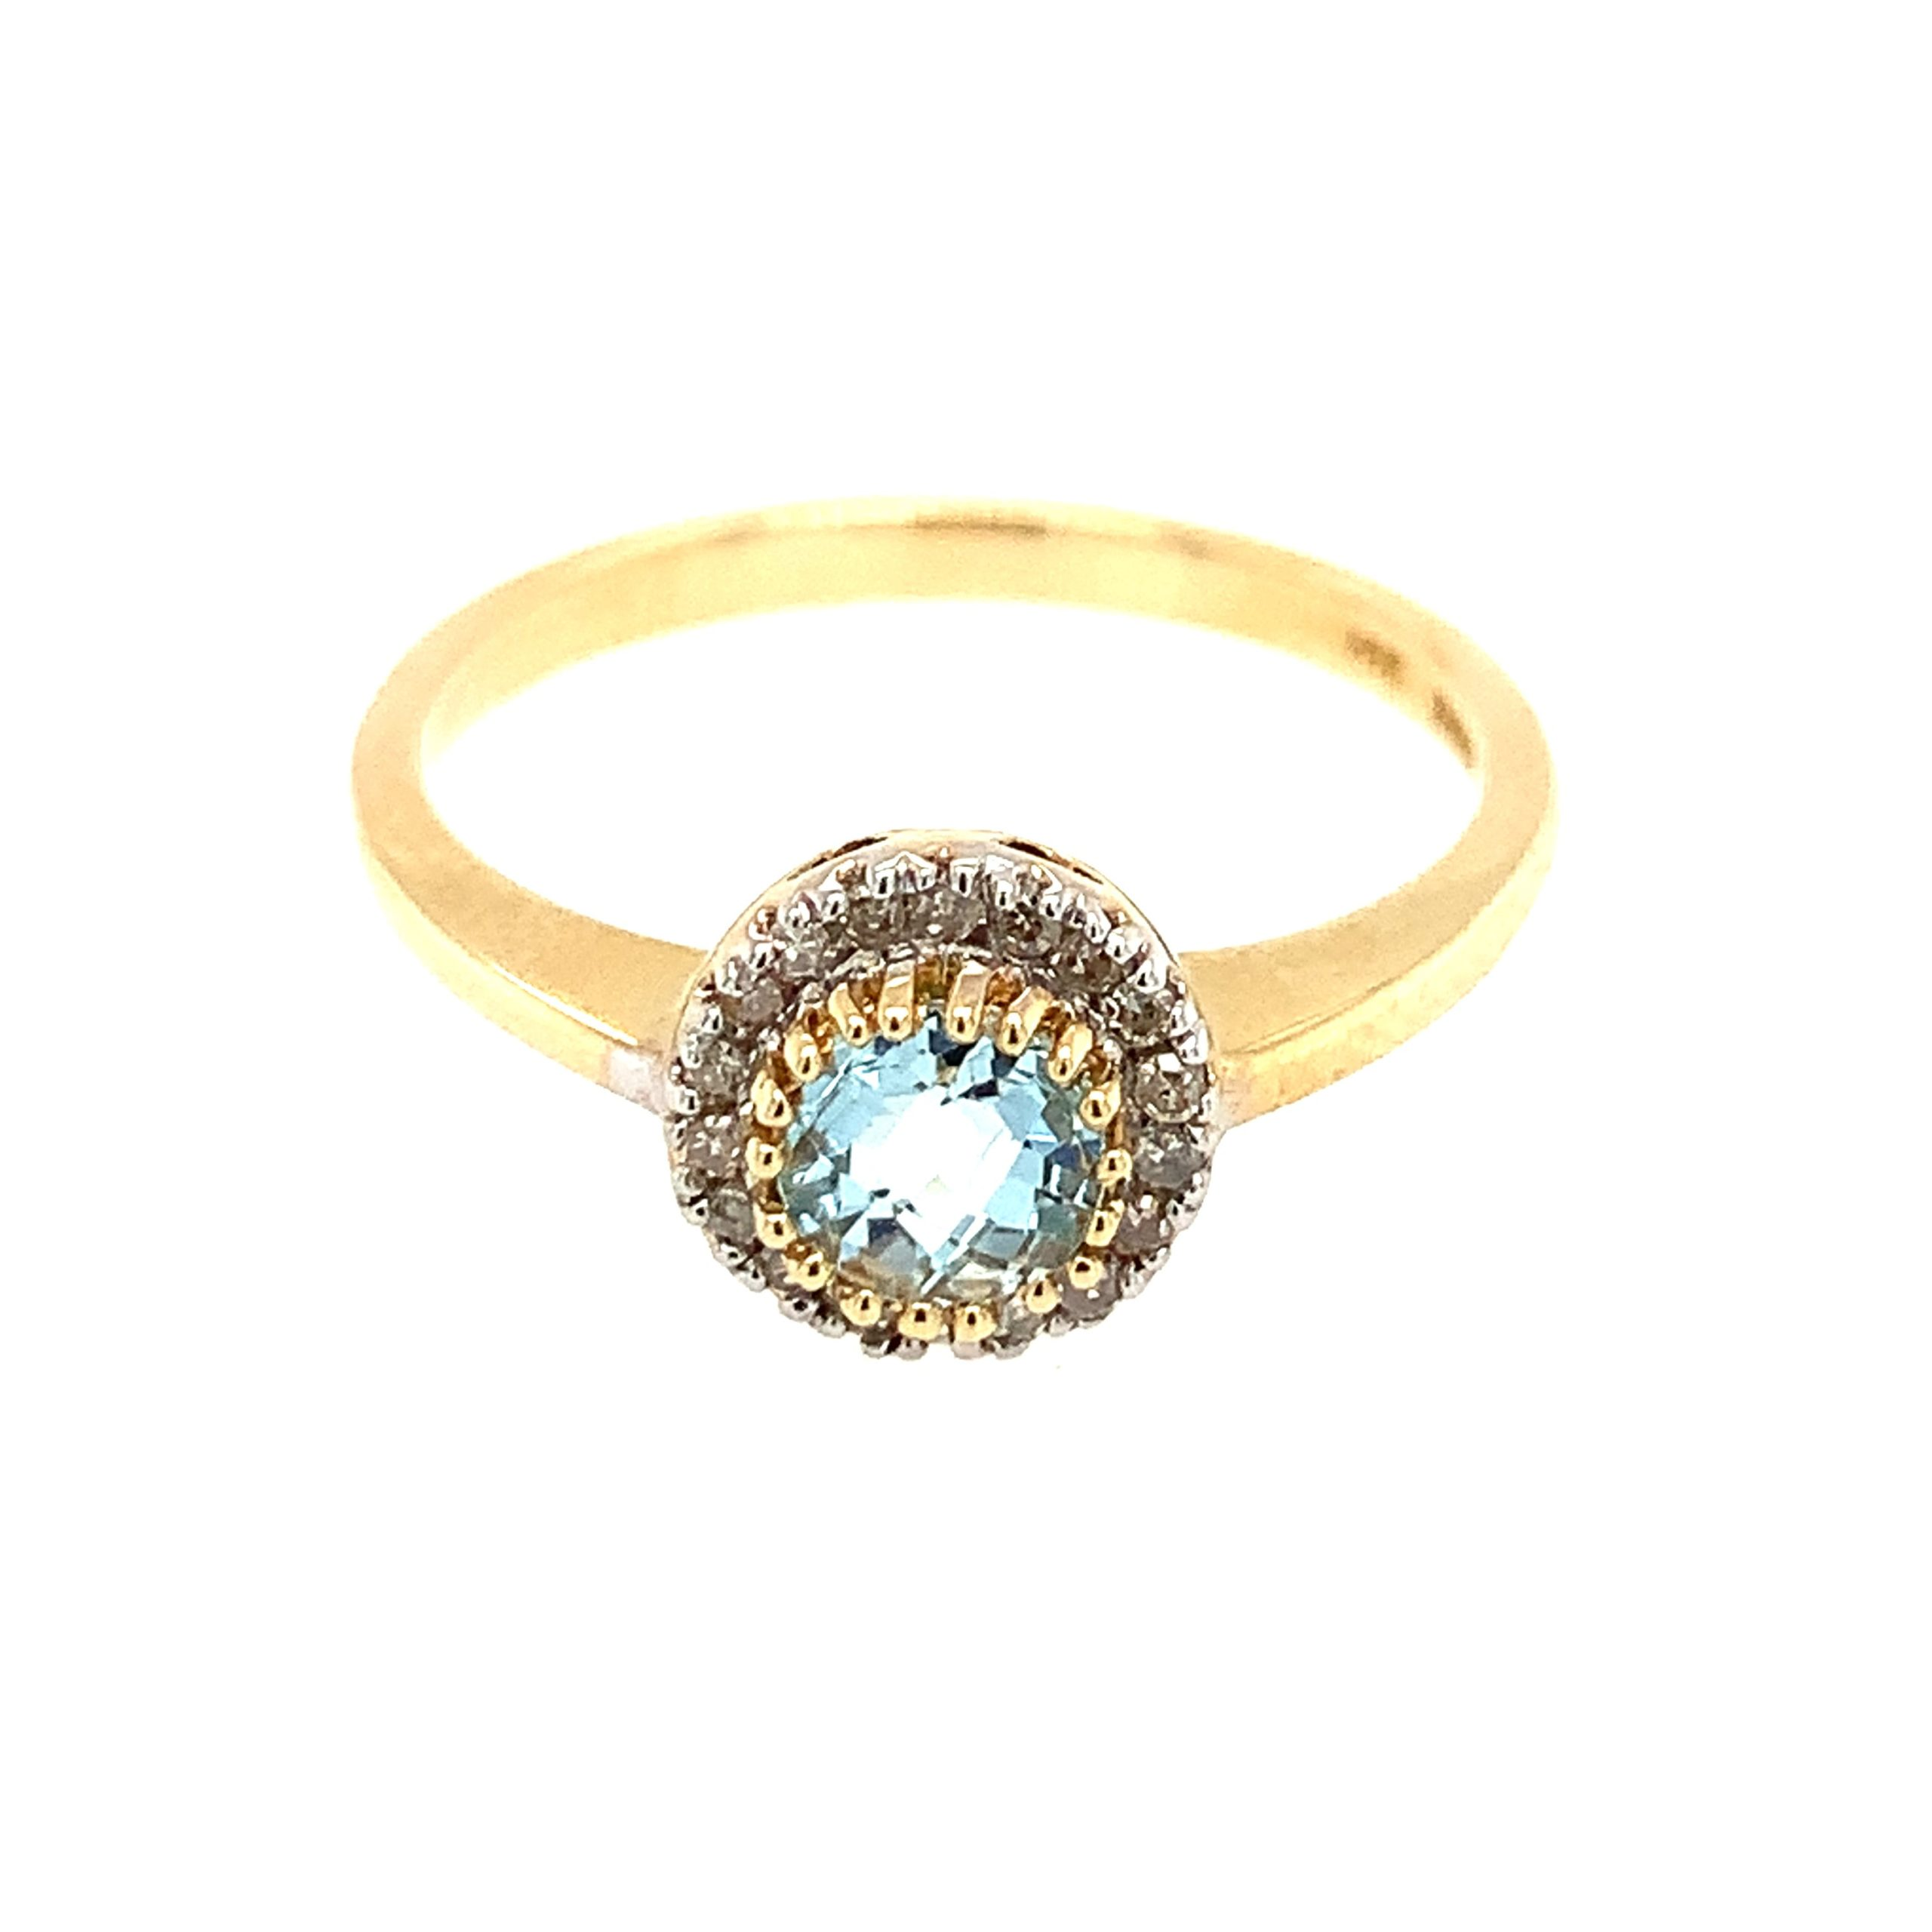 Two-Tone Blue Topaz Ring